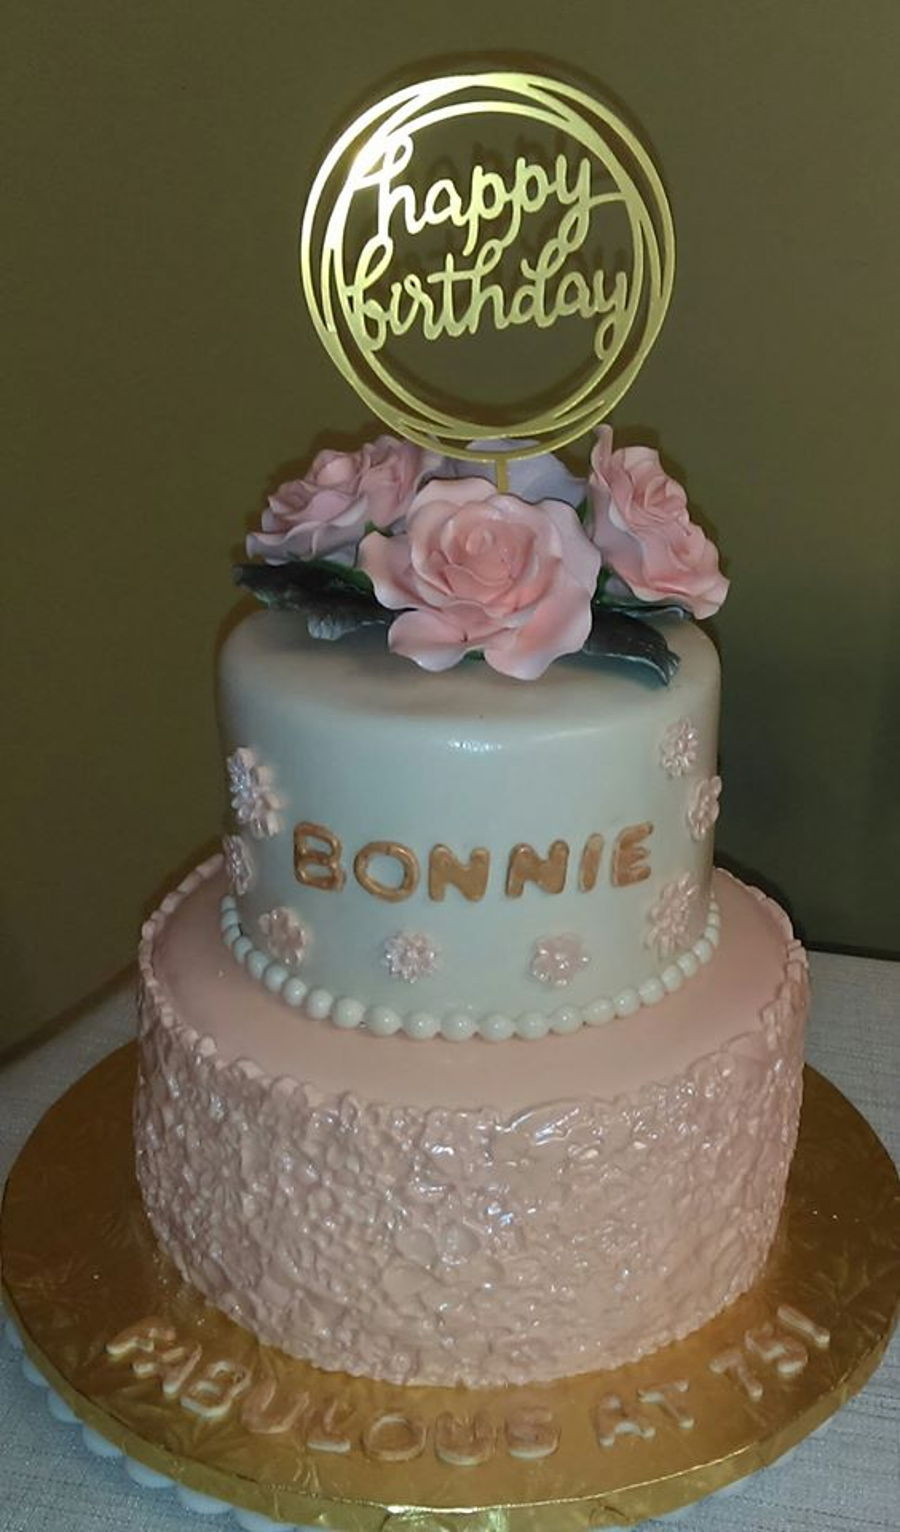 75th Birthday Cakes  Bonnie s 75Th Birthday Cake CakeCentral